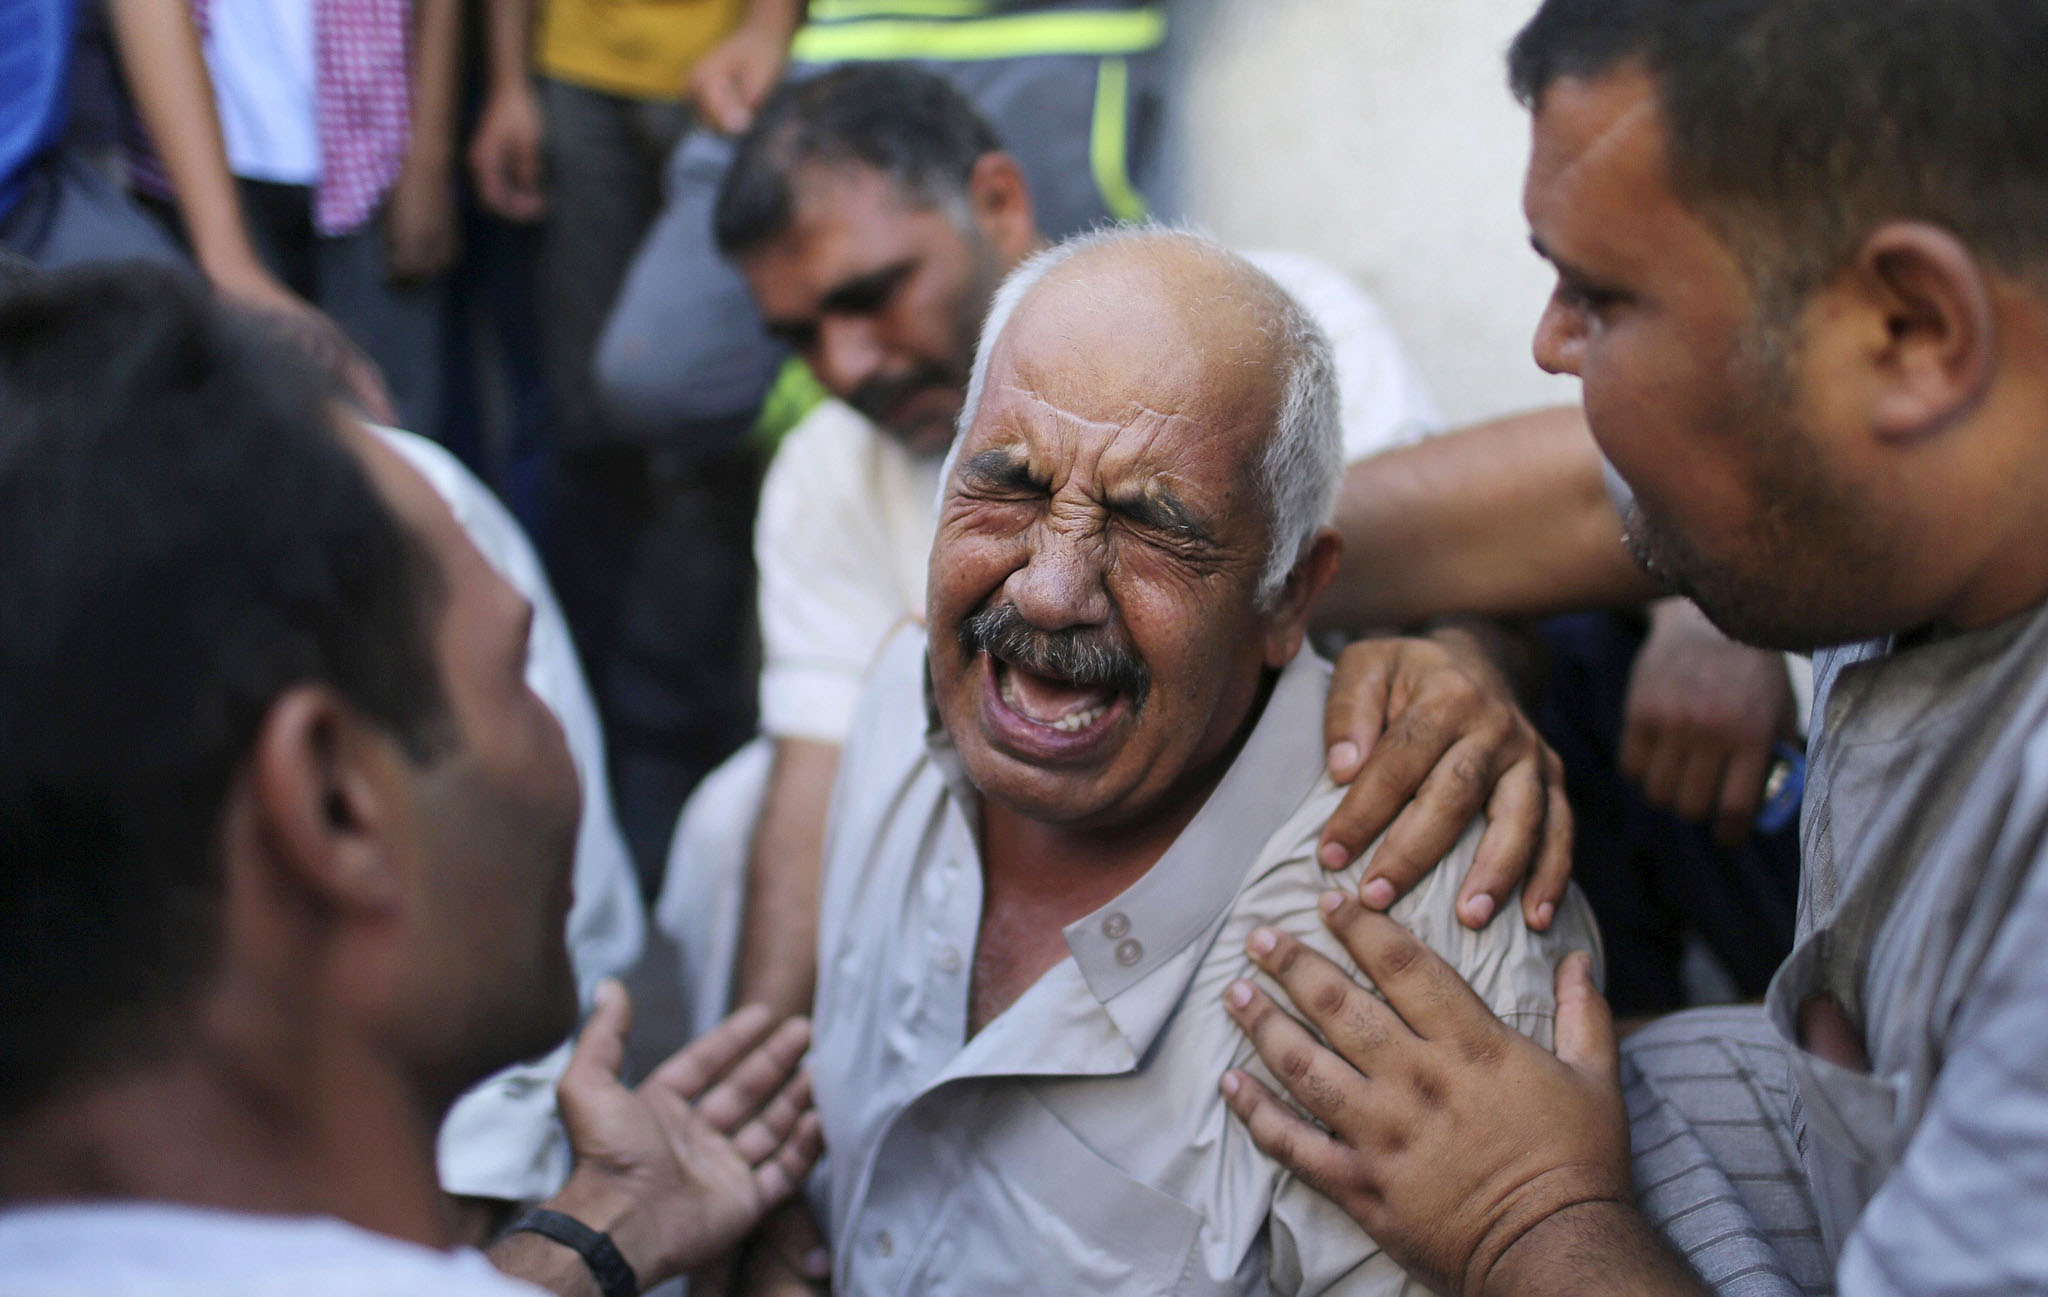 A grandfather of three Palestinian children cries outside a hospital morgue in Gaza City...REFILE - CORRECTING YEAR  A grandfather of three Palestinian children who medics said were killed in an Israeli air strike, cries outside a hospital morgue in Gaza City August 21, 2014. An Israeli air strike killed three senior Hamas military commanders in the Gaza Strip on Thursday, the Islamist group said, the clearest sign yet Israel is focusing its assault on those leading attacks from the Palestinian enclave. The Israeli military had no immediate comment on what would constitute the killing of the most senior Hamas men since it launched its offensive on Gaza six week ago with the declared aim of curbing rocket fire into its territory. REUTERS/Suhaib Salem (GAZA - Tags: CIVIL UNREST POLITICS TPX IMAGES OF THE DAY CONFLICT)